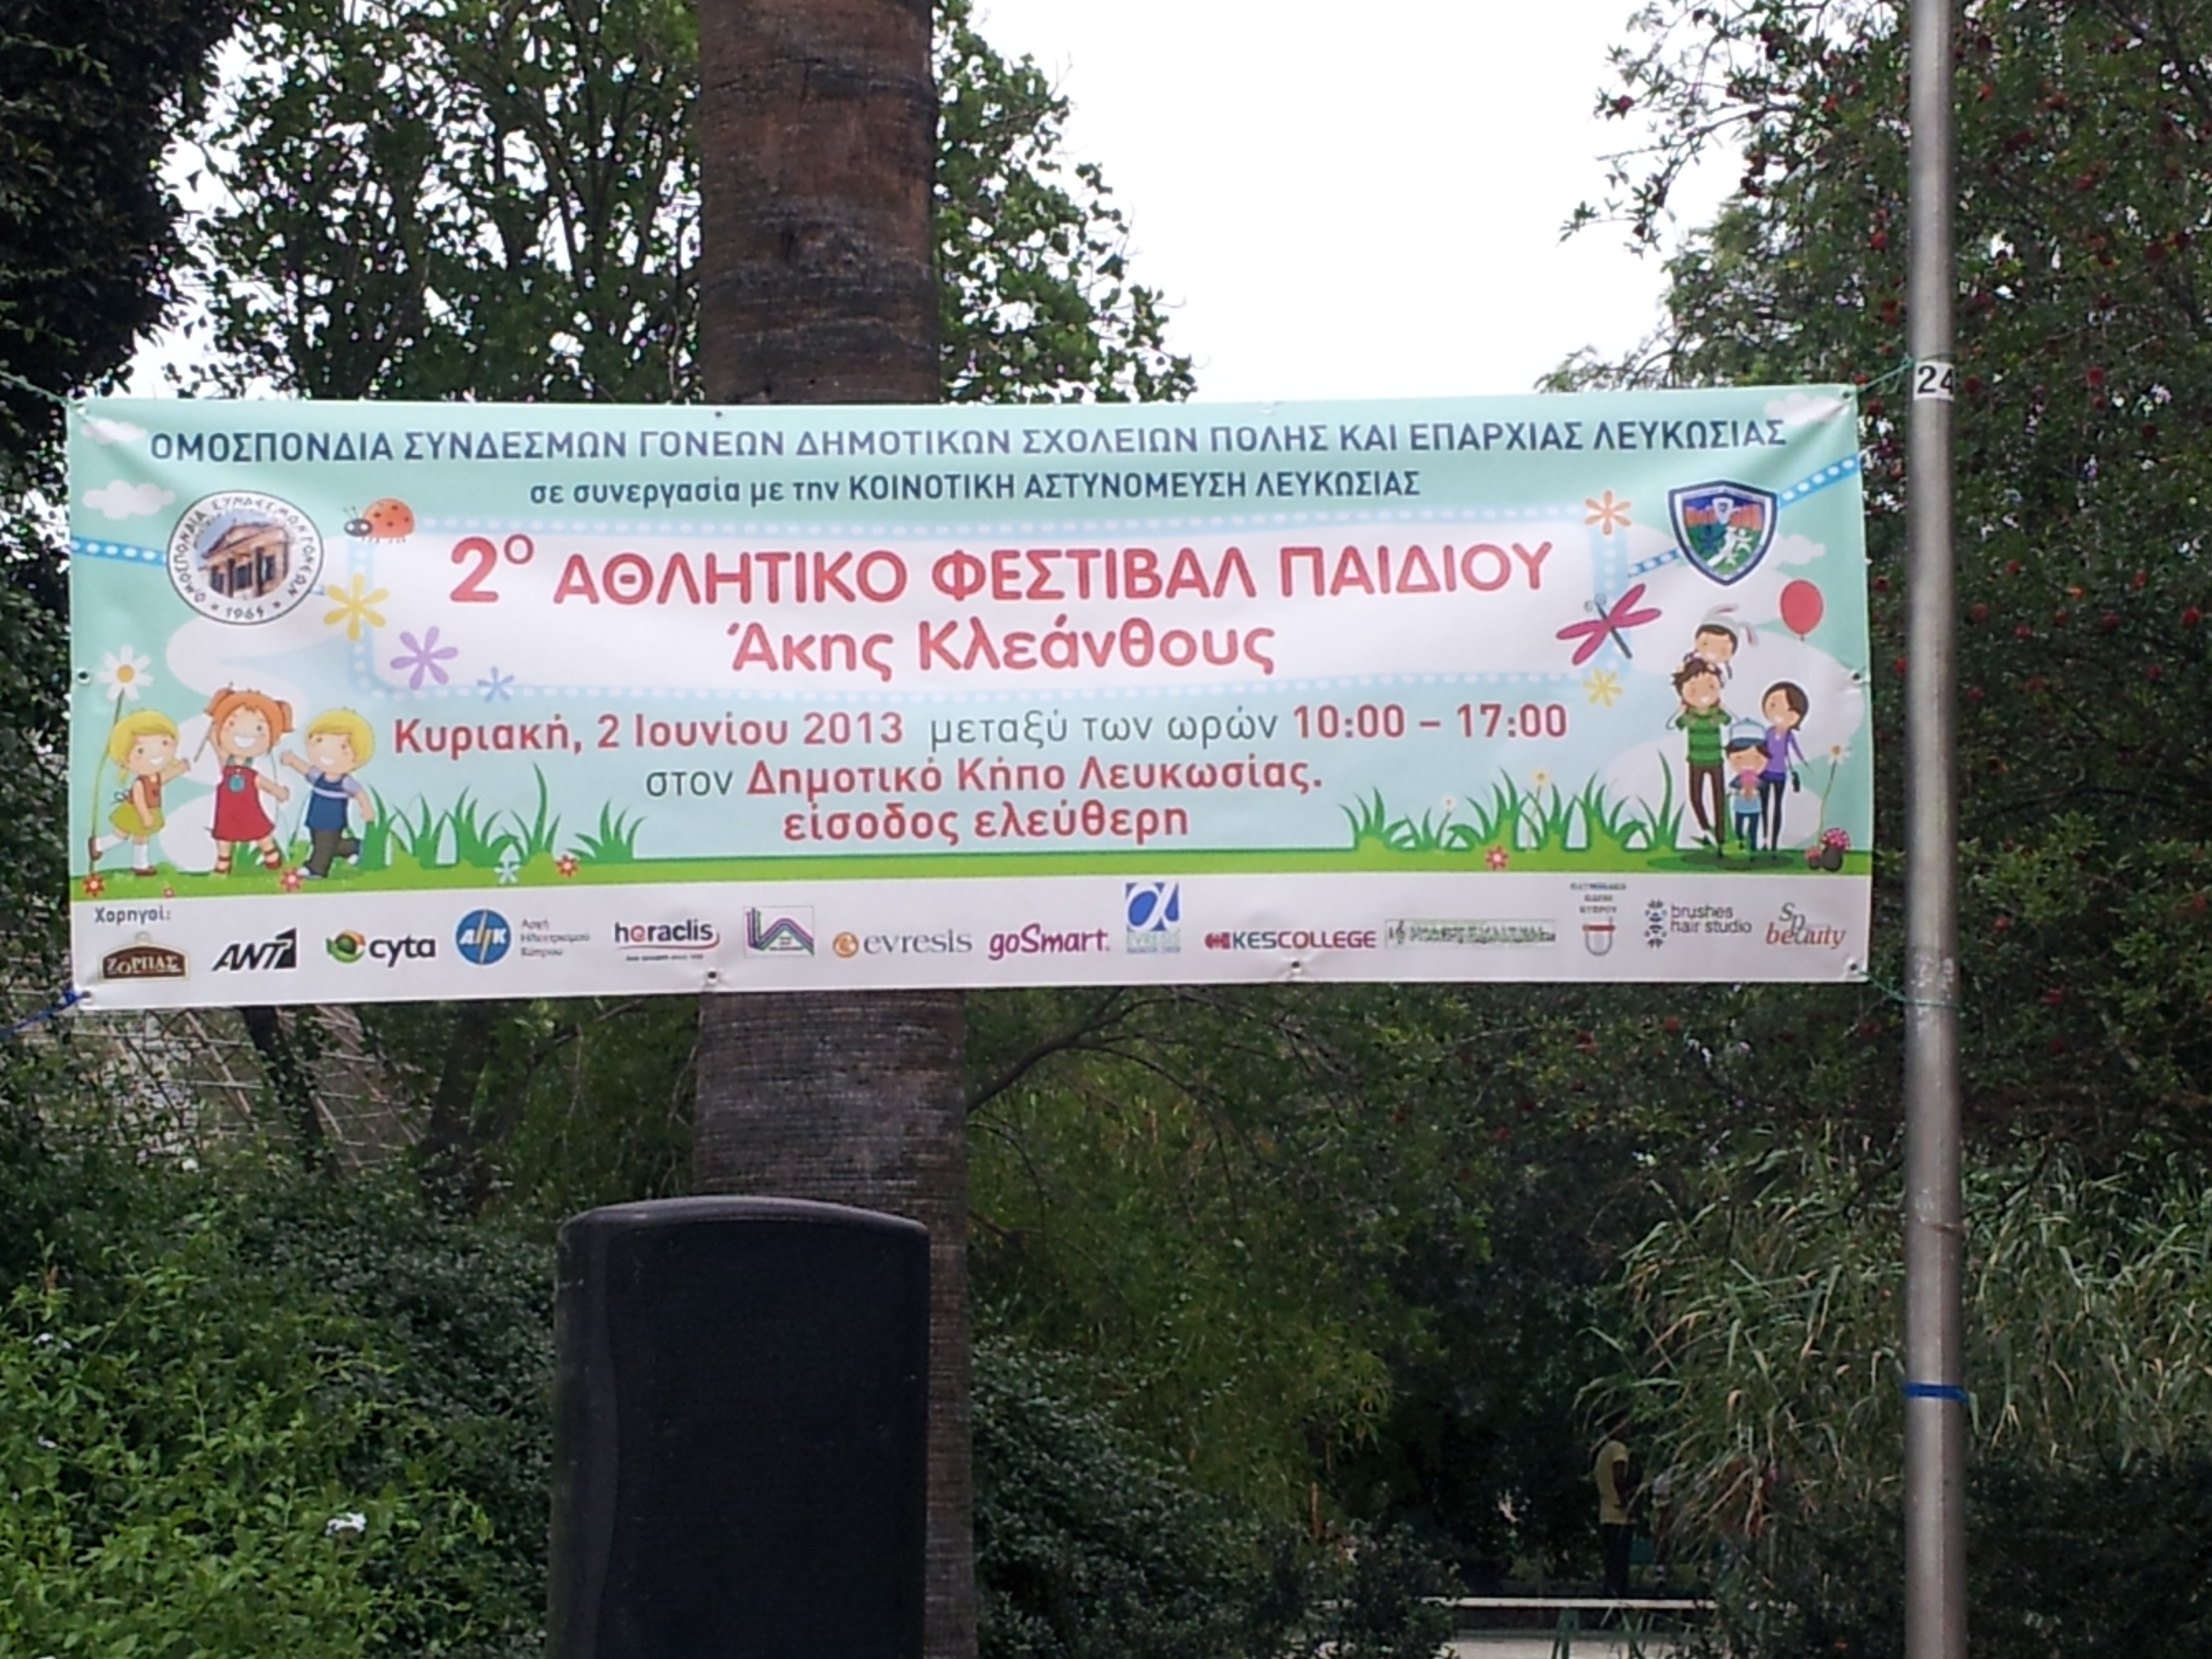 Reporting an incident of discrimination and exclusion of migrants from an open and public green park in Nicosia